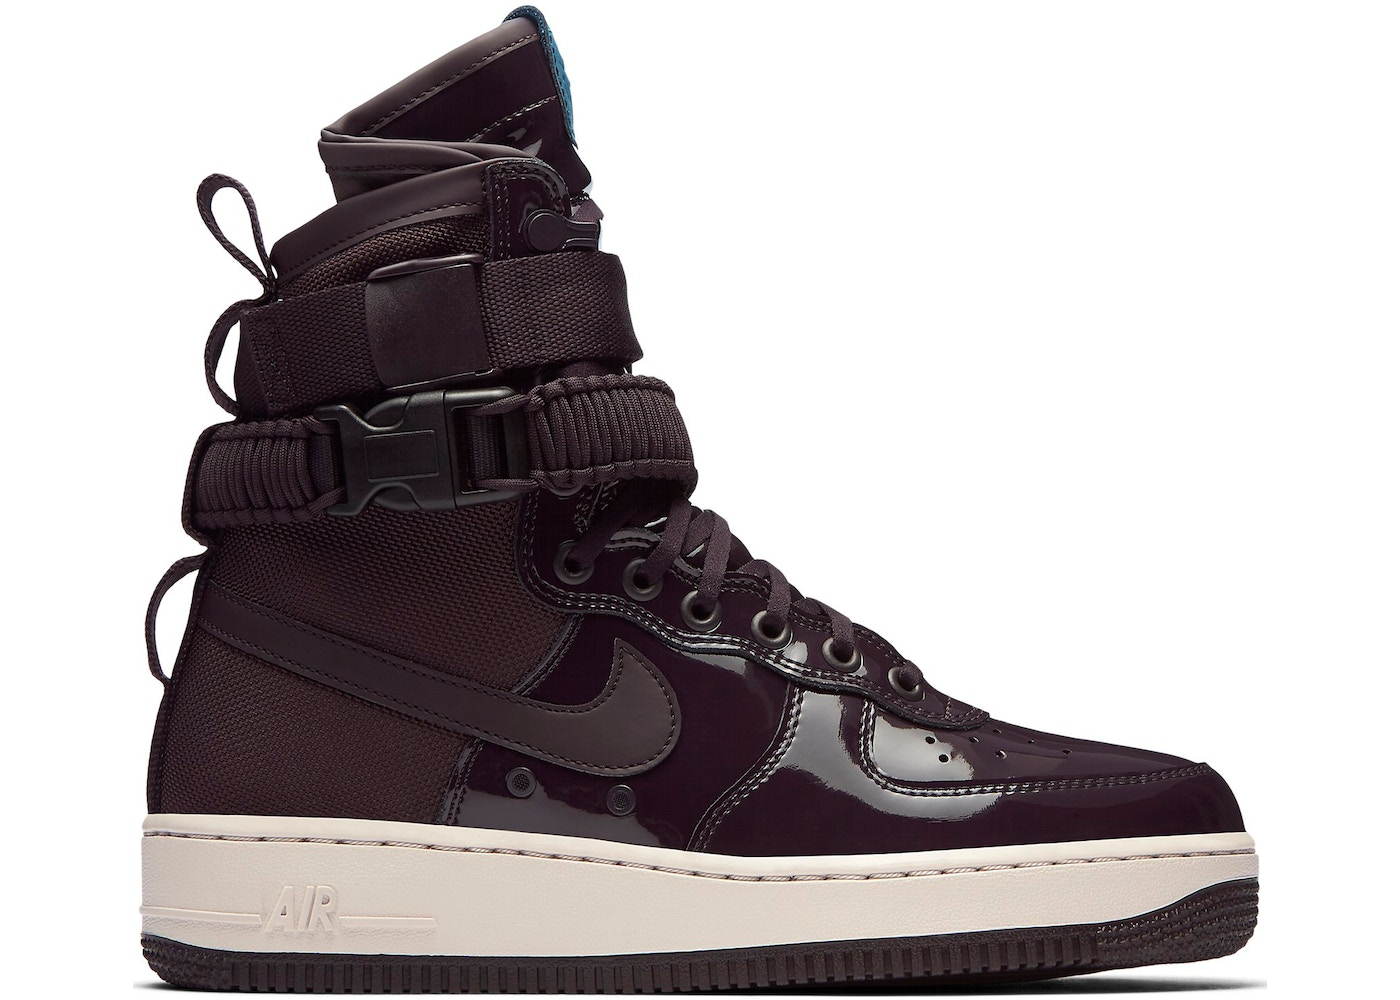 meet ba379 38b97 Nike Air Force 1 Shoes - Lowest Ask